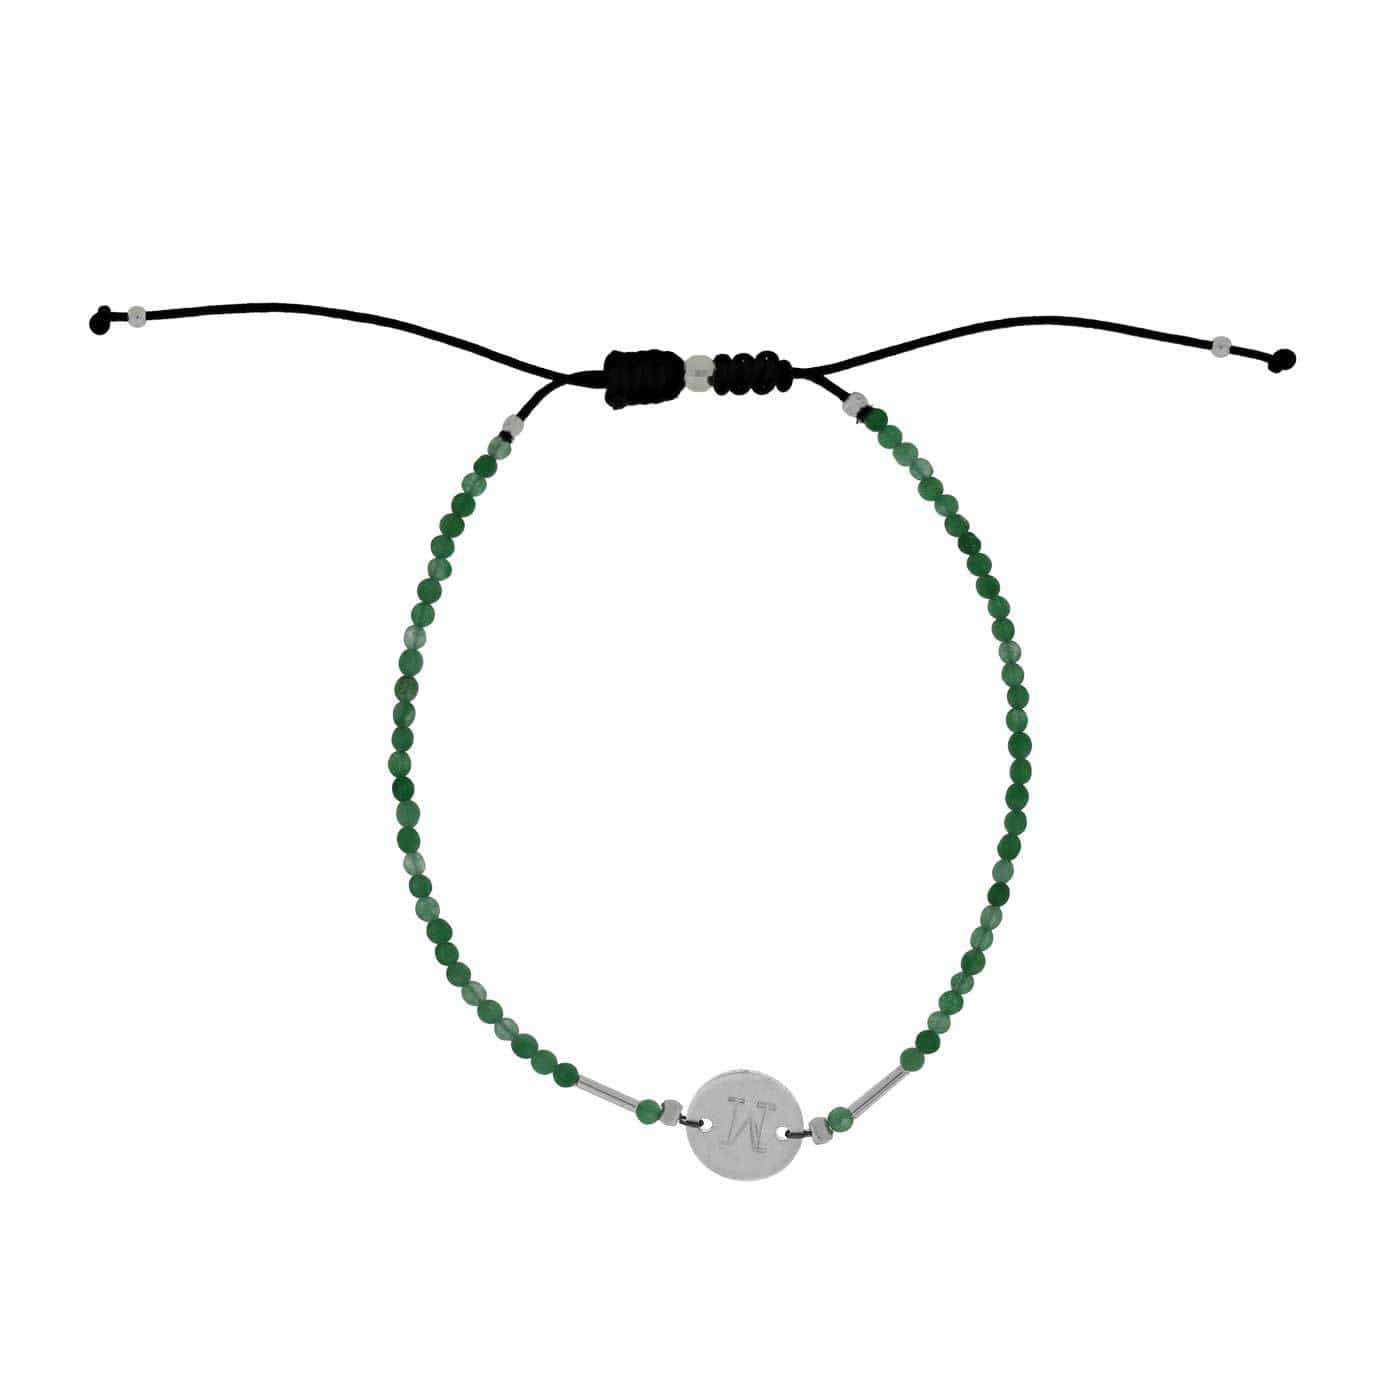 Green Agate Letter M Gemstone Friendship Bracelet